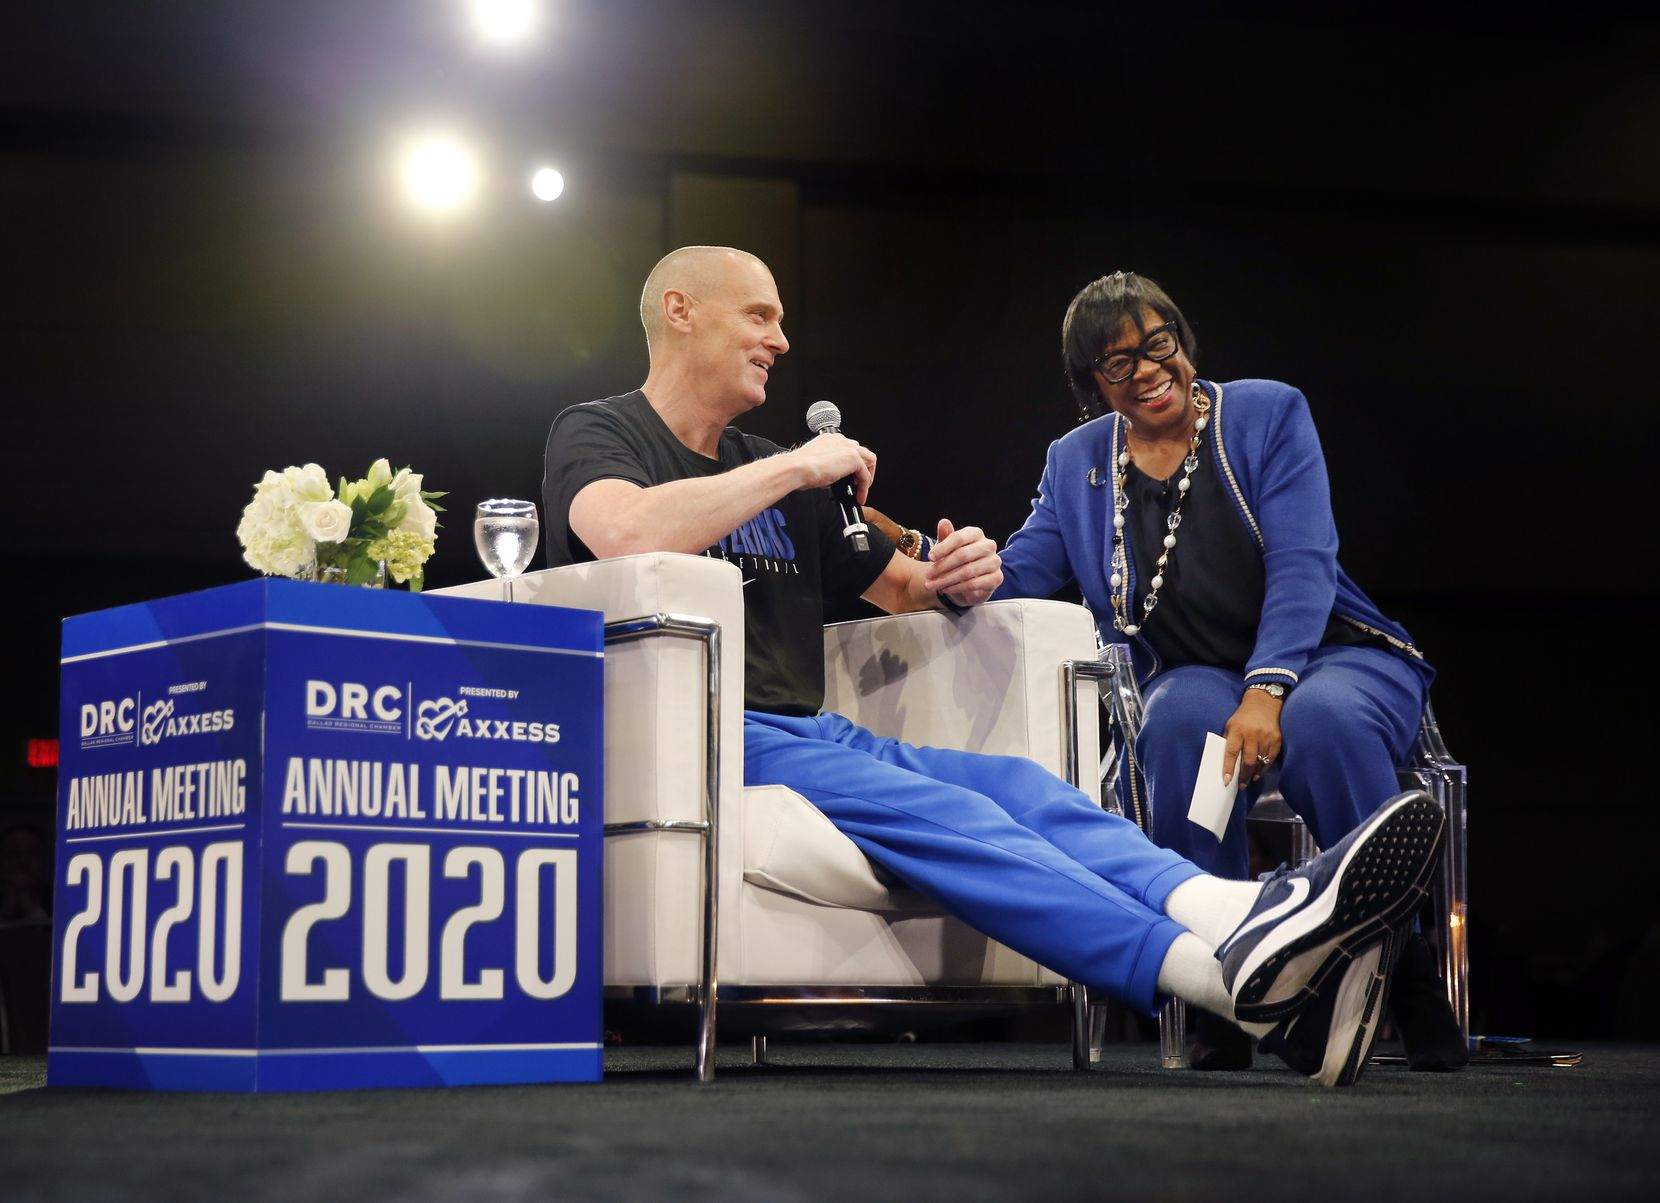 Dallas Mavericks CEO Cynt Marshall (right) laughs at team head coach Rick Carlisle as they participated in a keynote conversation at the Dallas Regional Chamber's annual meeting and luncheon at the Hilton Anatole hotel in Dallas on Thursday.